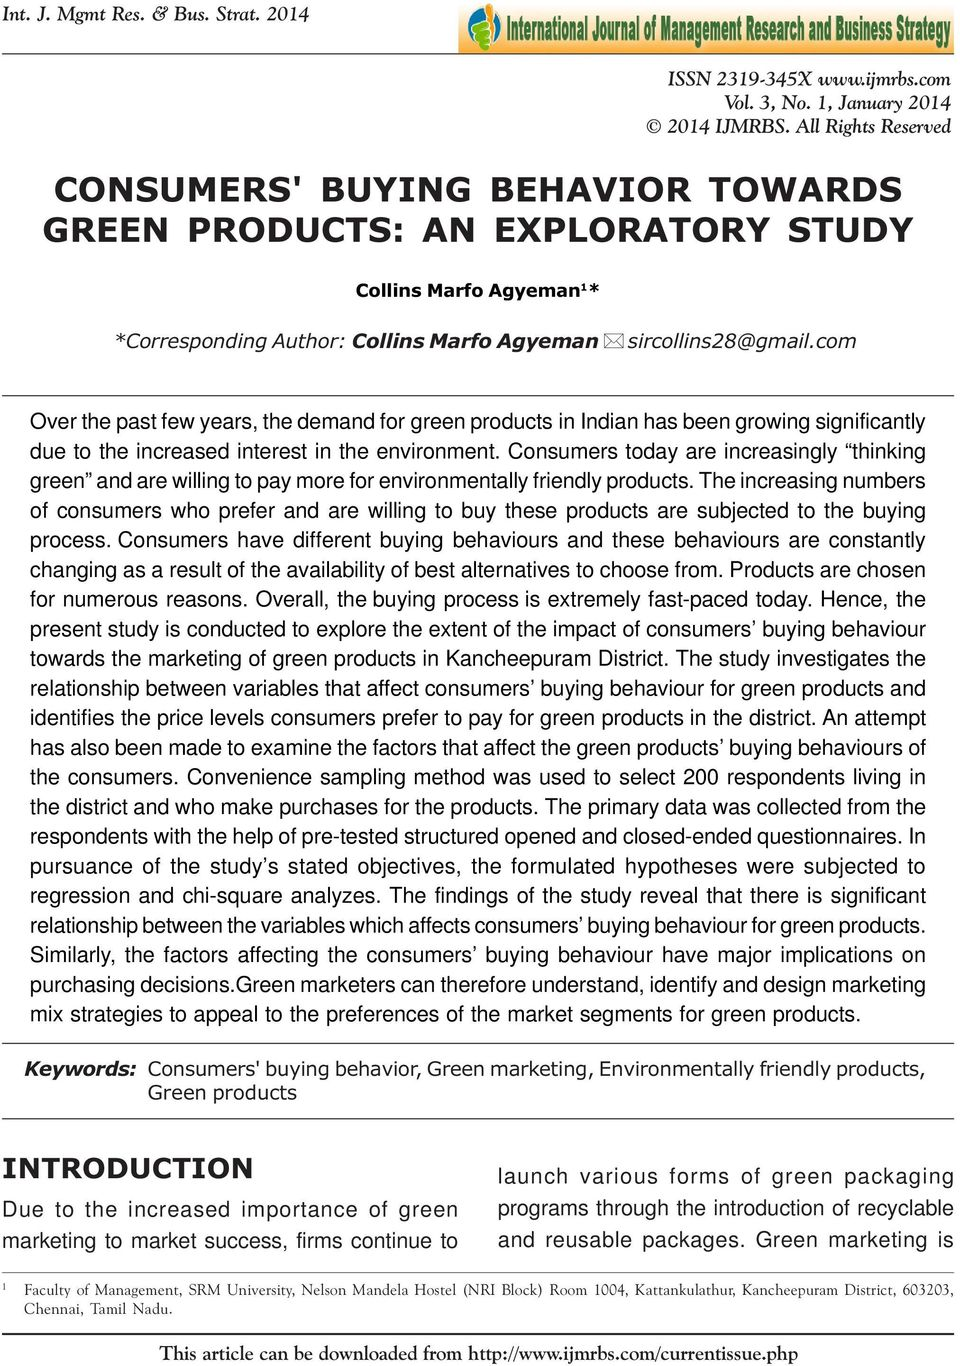 CONSUMERS' BUYING BEHAVIOR TOWARDS GREEN PRODUCTS: AN